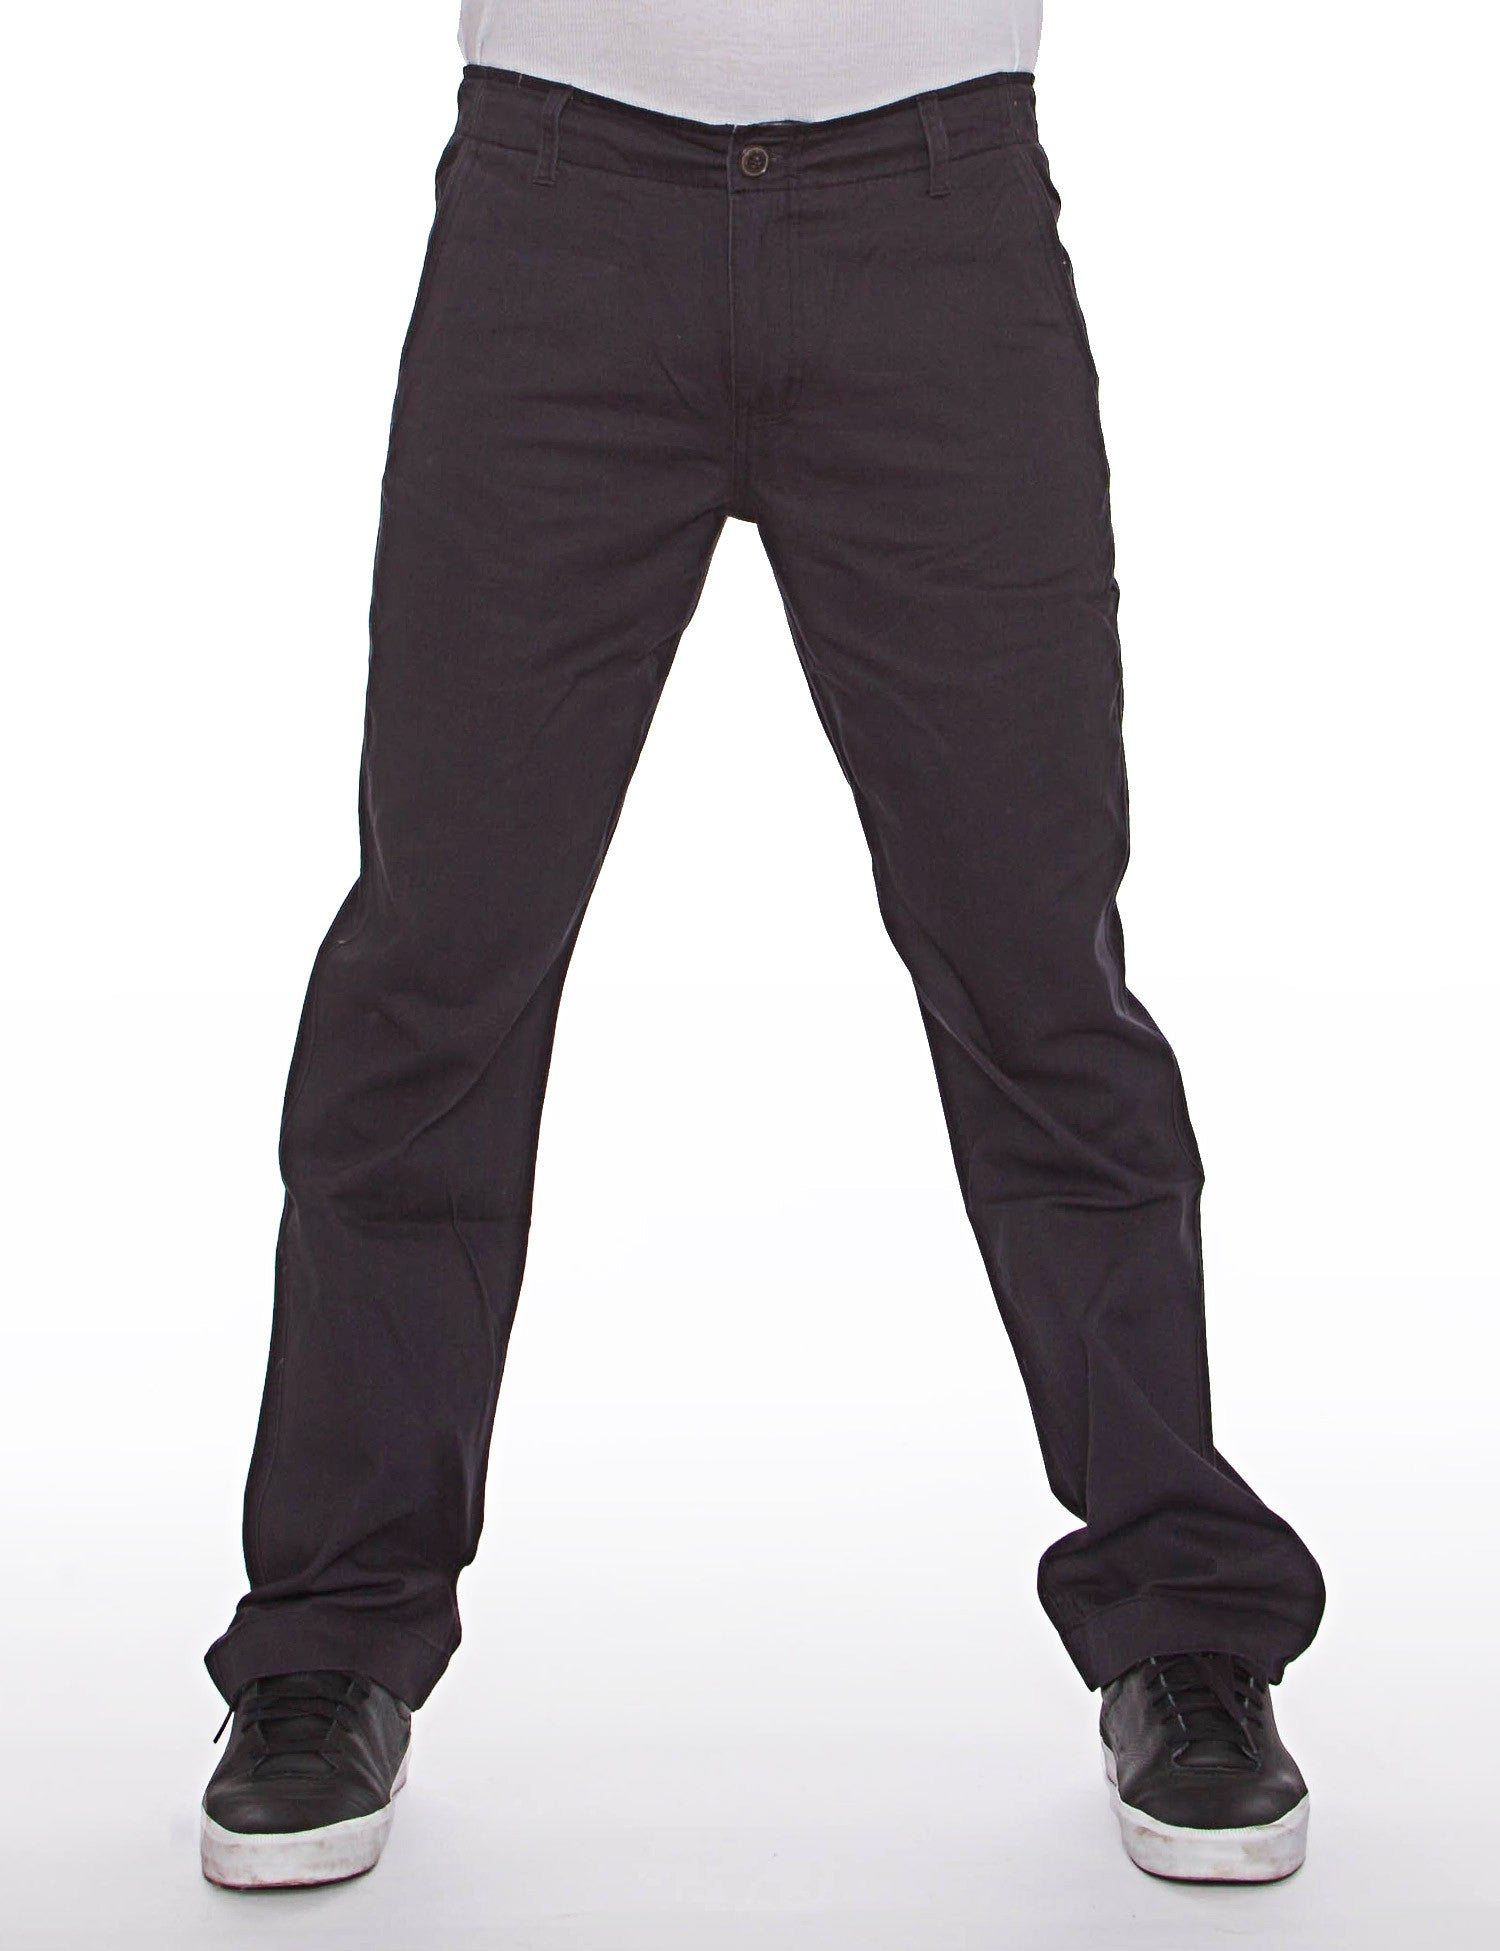 Royal Blue Basic Slim Straight Fit Chino Pant Navy